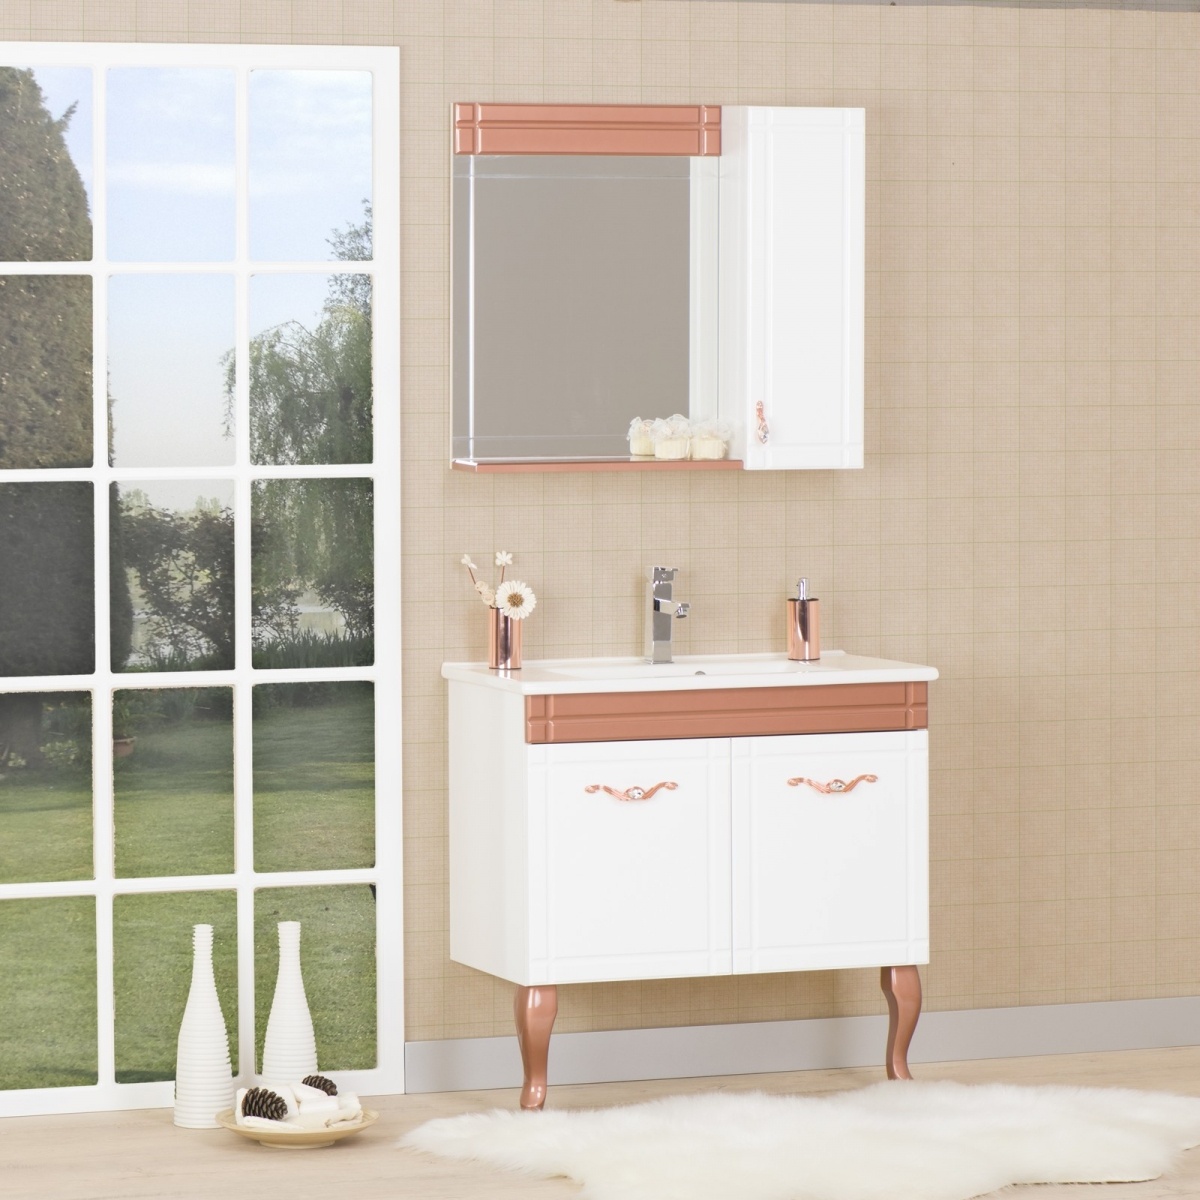 ERİZA SERIES | Kalay Bath furniture - wooden sink first and only ...